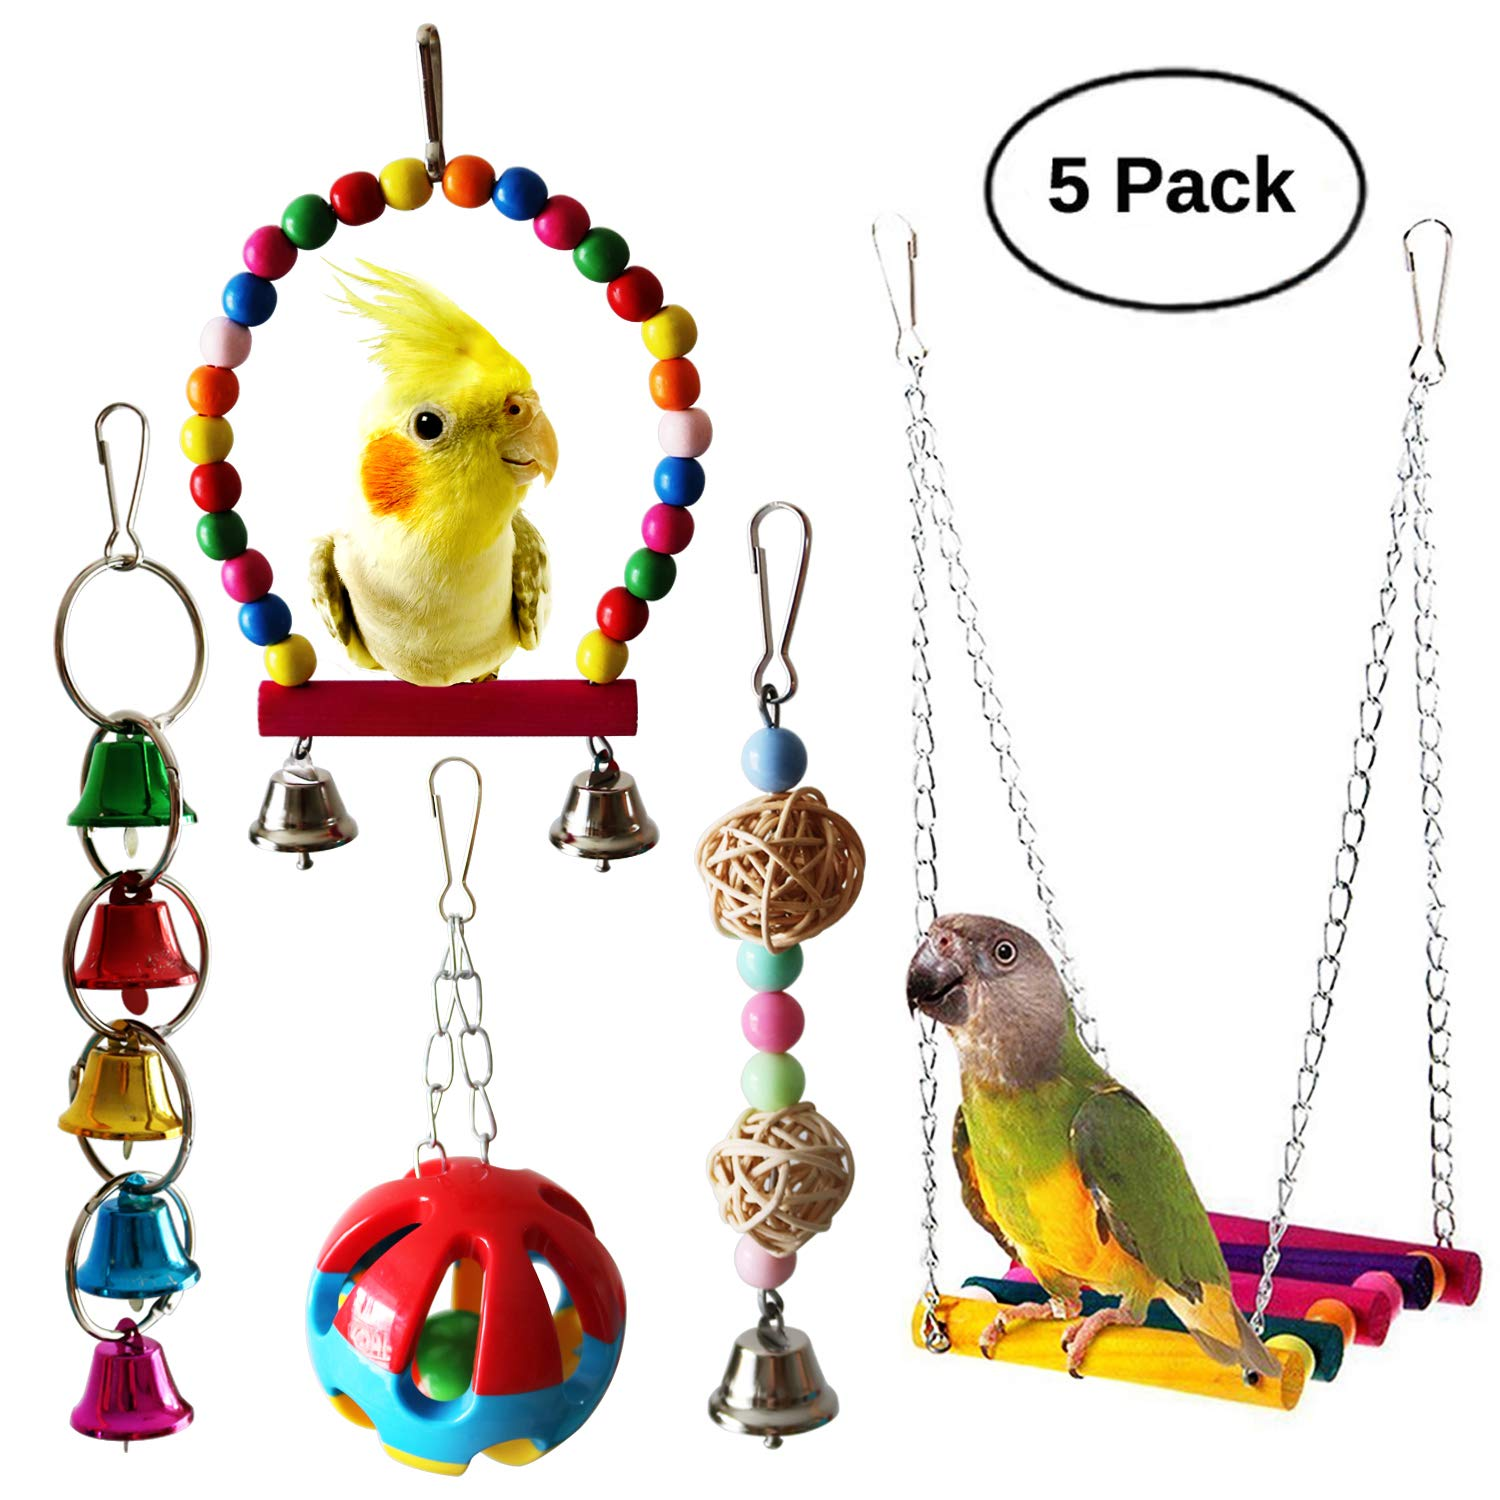 ویکالا · خرید  اصل اورجینال · خرید از آمازون · BWOGUE Bird Swing Toys with Bells Pet Parrot Cage Hammock Hanging Toy Perch for Budgie Love Birds Conures Small Parakeet Finches Cockatiels (5 Pack) wekala · ویکالا